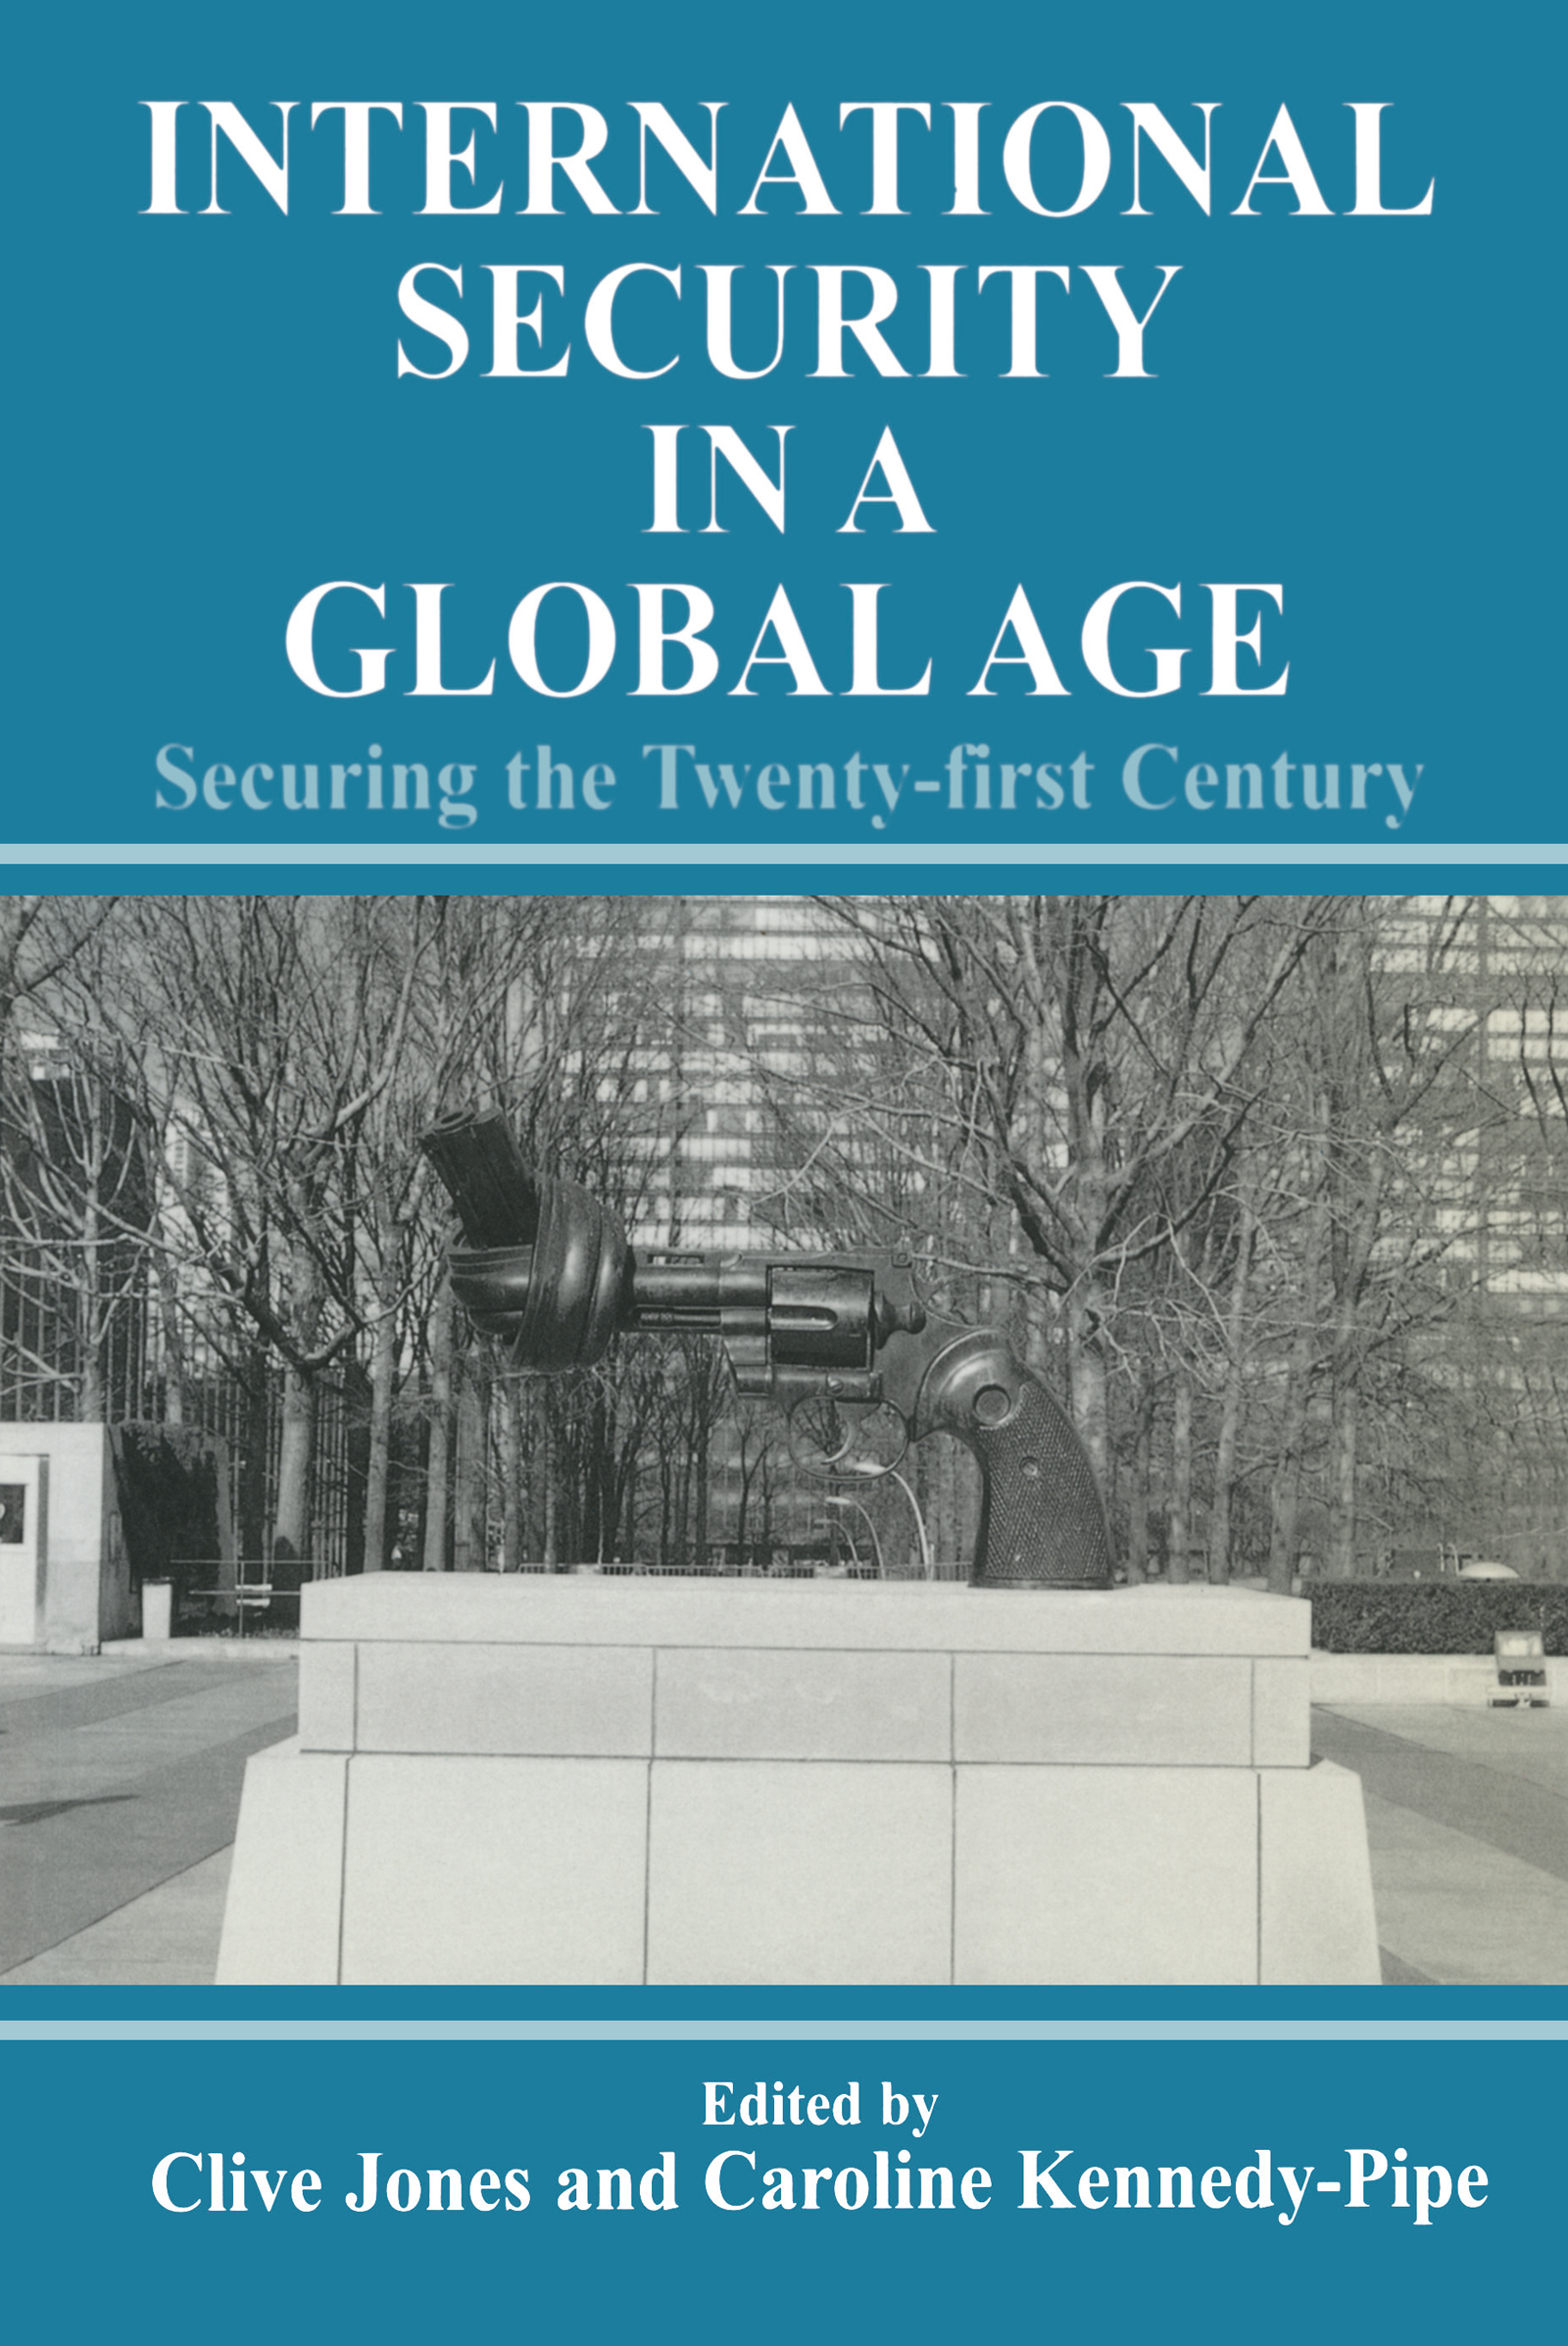 International Security Issues in a Global Age